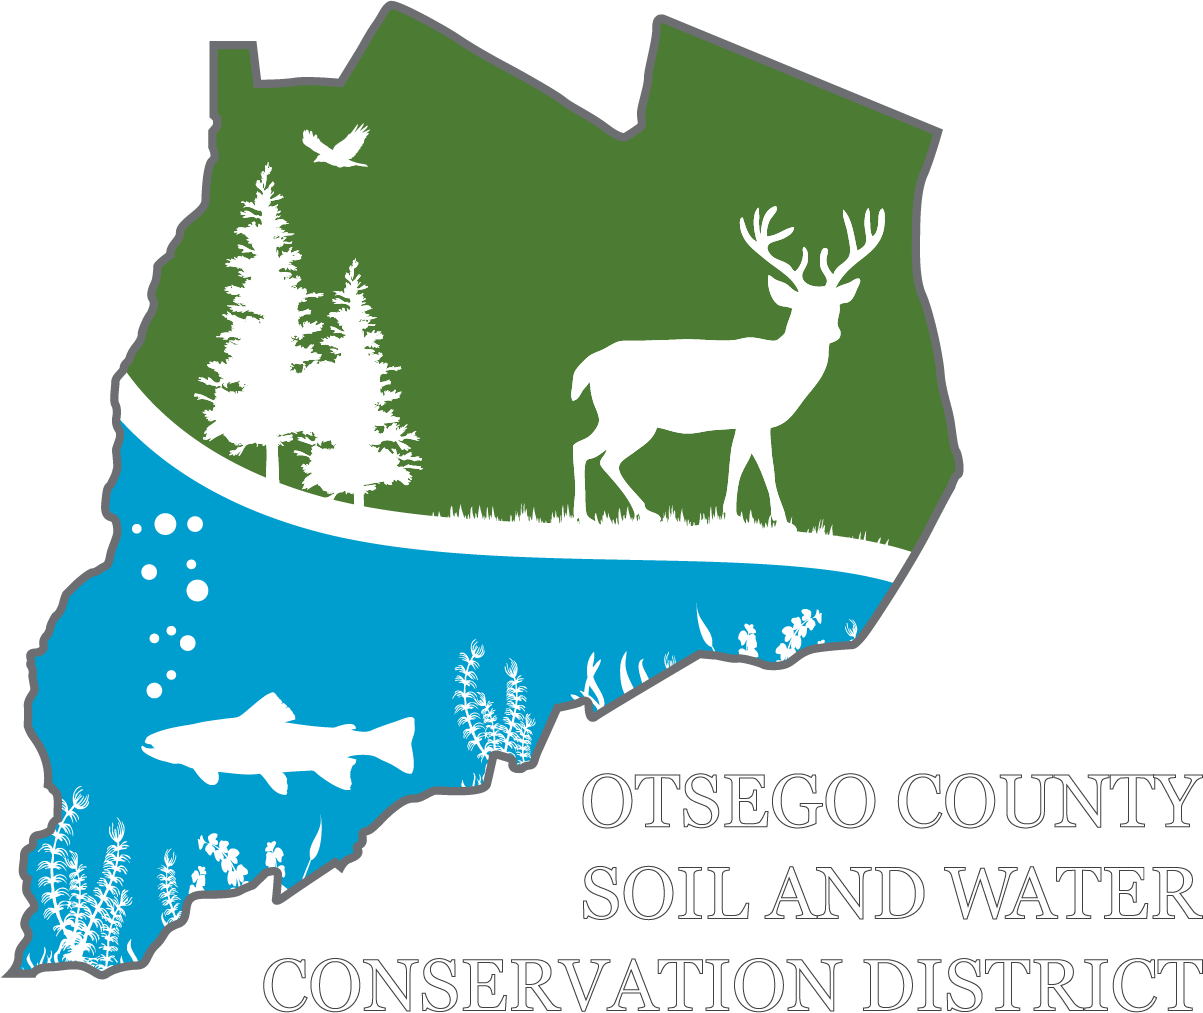 Otsego County Soil and Water Conservation District